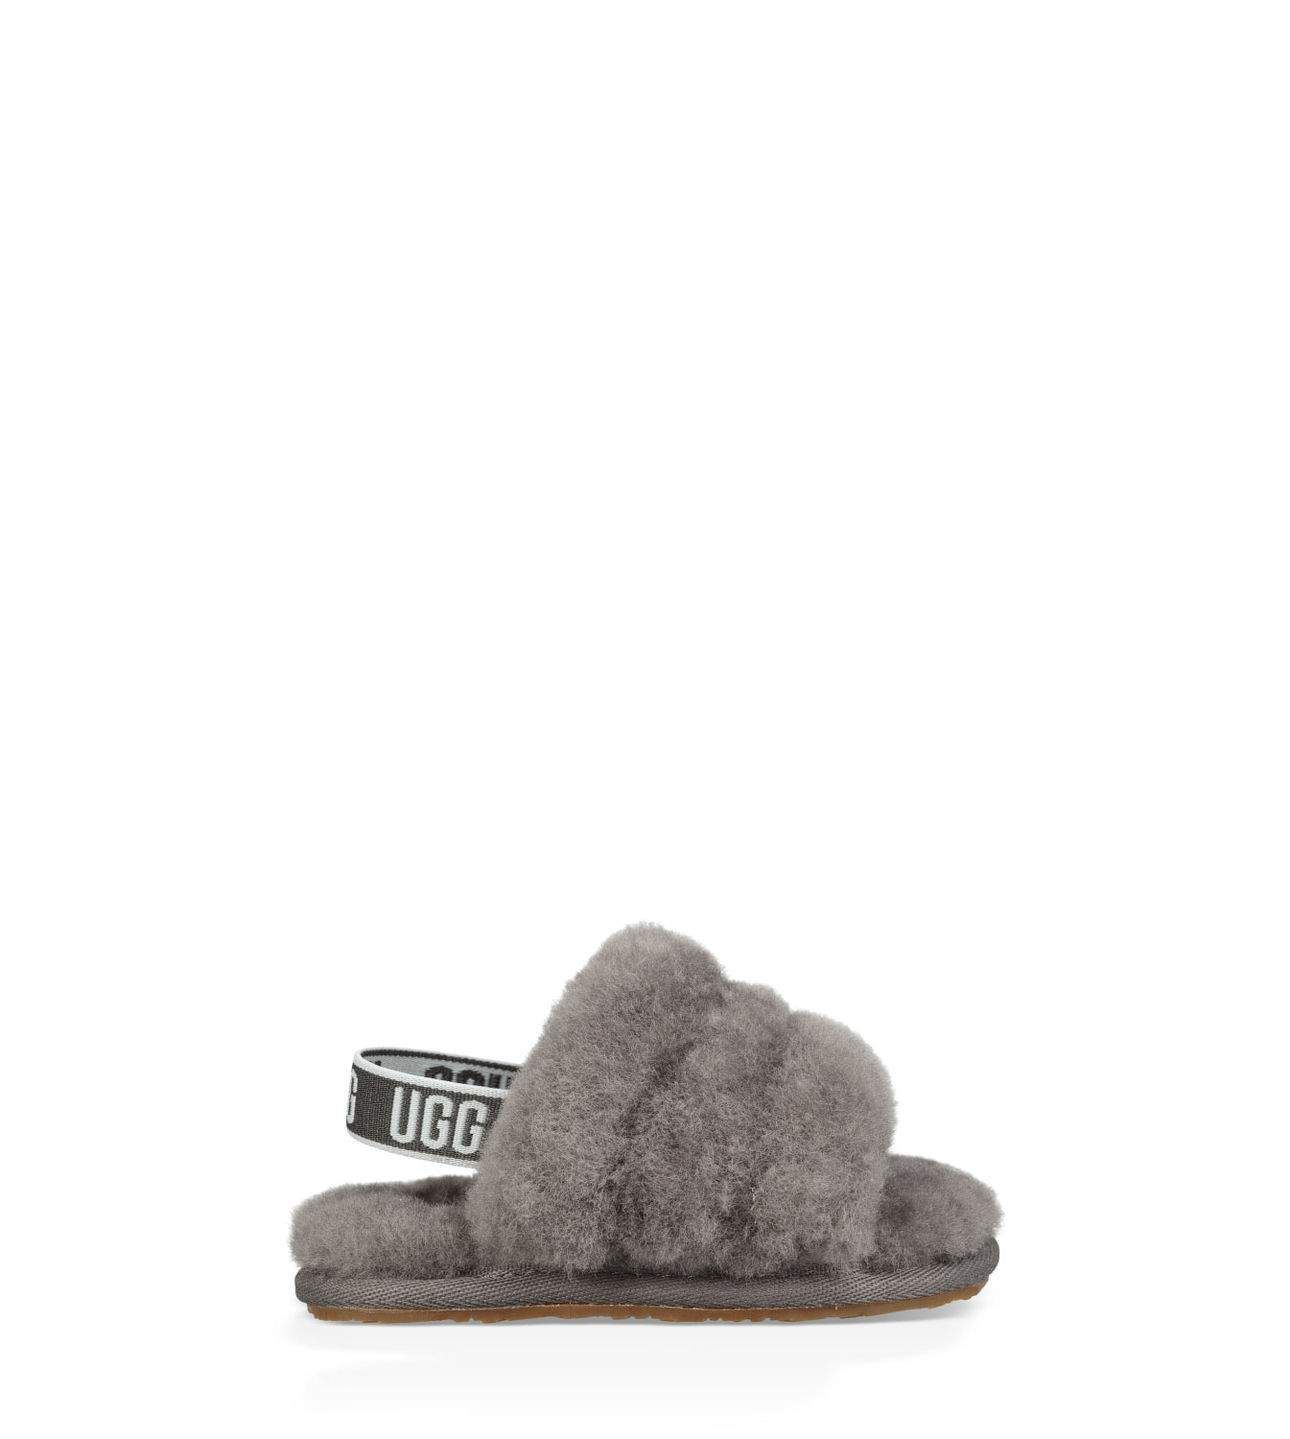 Fluff Yeah Slide | Baby girl sandals, Cute baby shoes, Baby